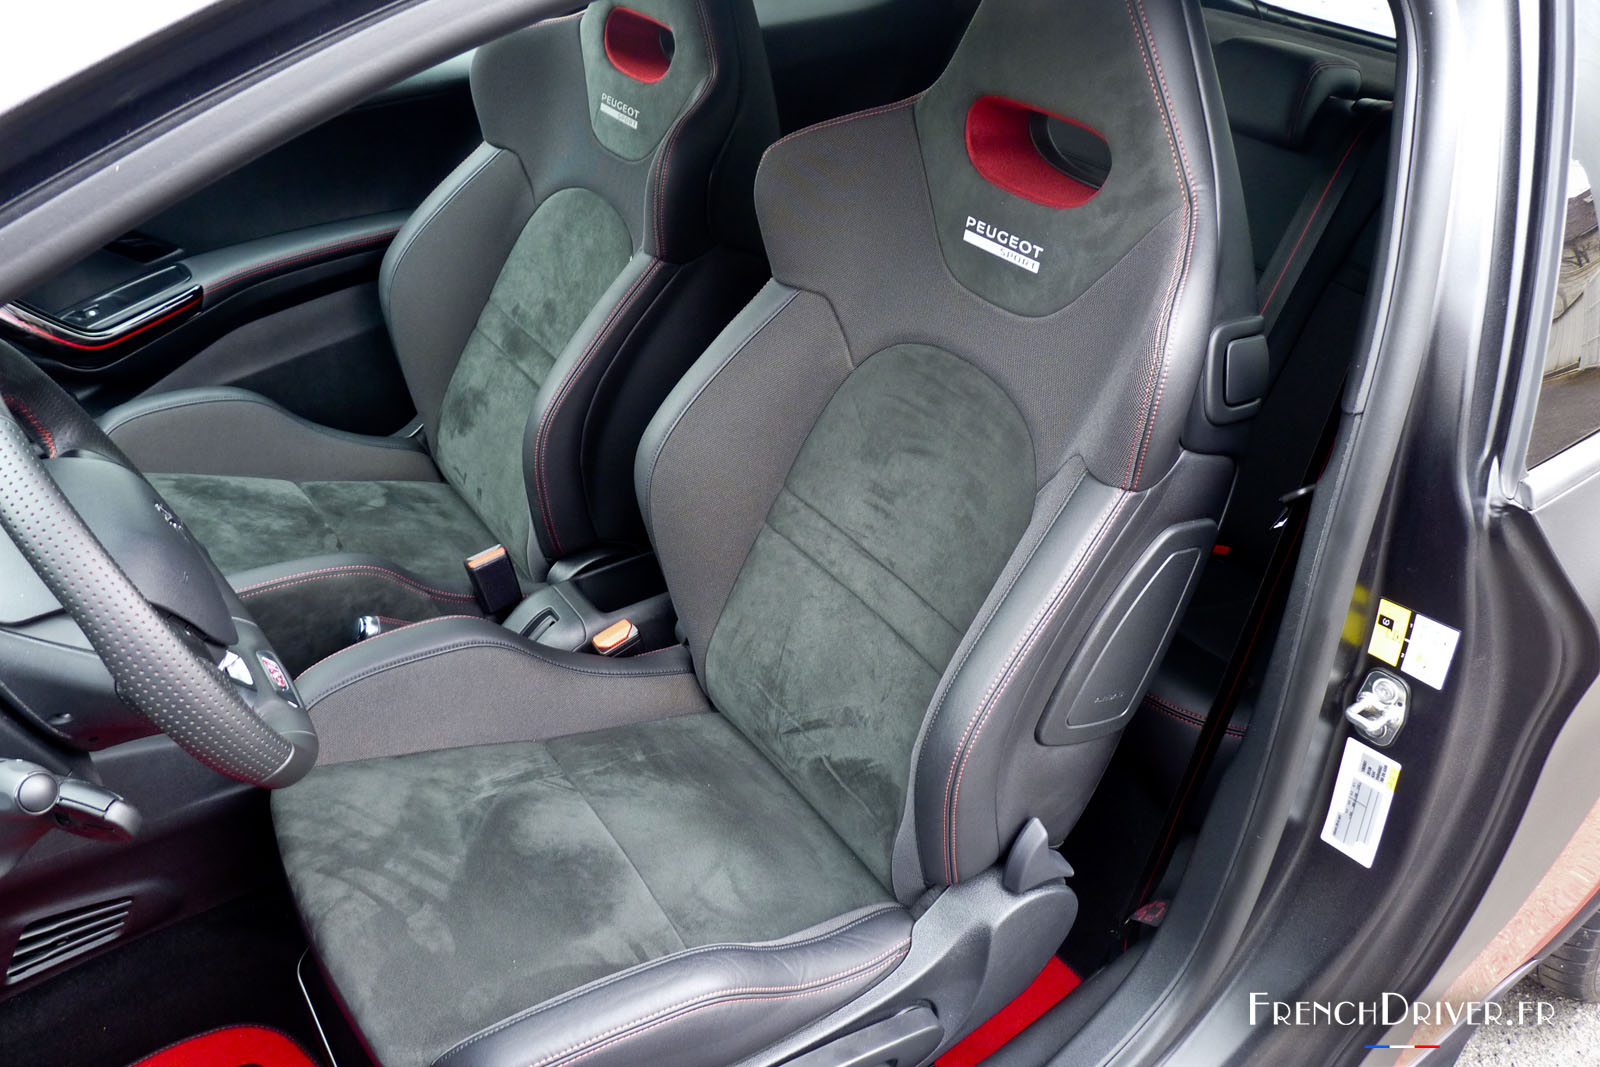 essai de la peugeot 208 gti 30th l 39 exemple suivre. Black Bedroom Furniture Sets. Home Design Ideas